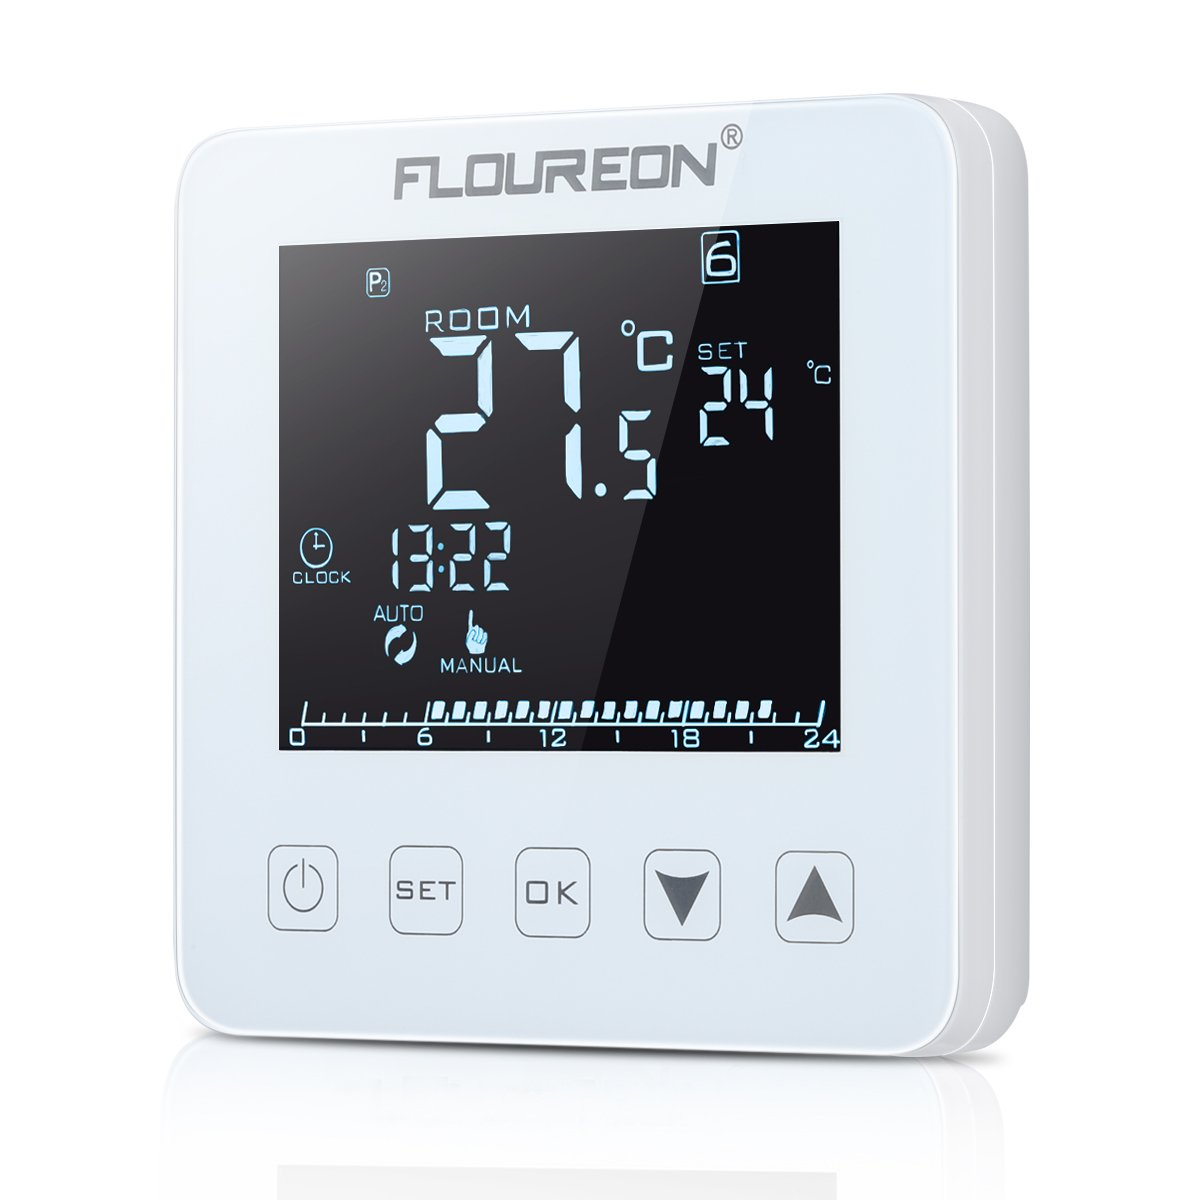 FLOUREON Heating Thermostat LCD Touchscreen Backlight Programble 5+2/6+1/7 Weekly 6 Stages Daily 24Hr Underfloor Heating Thermostat and Temperature Controller (White)